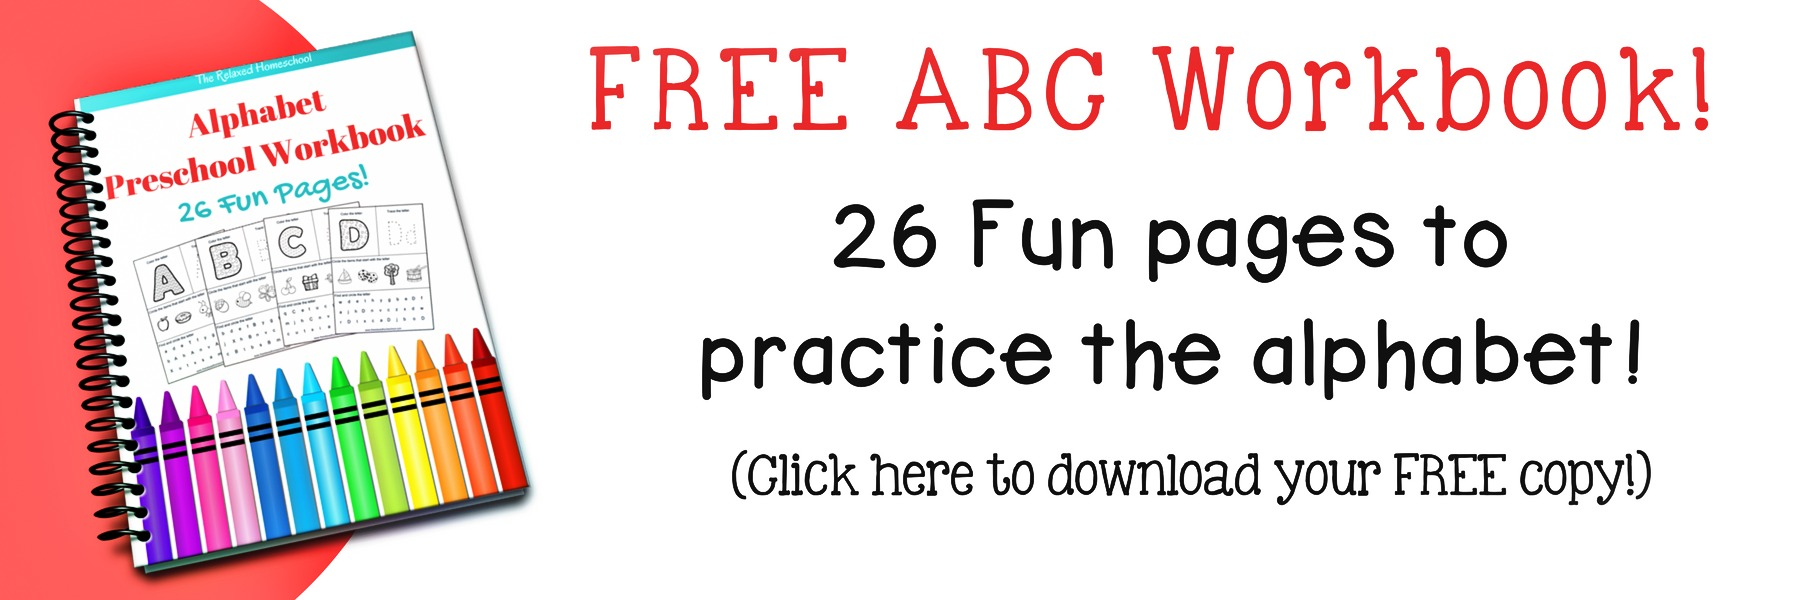 FREE ABC Workbook (1)